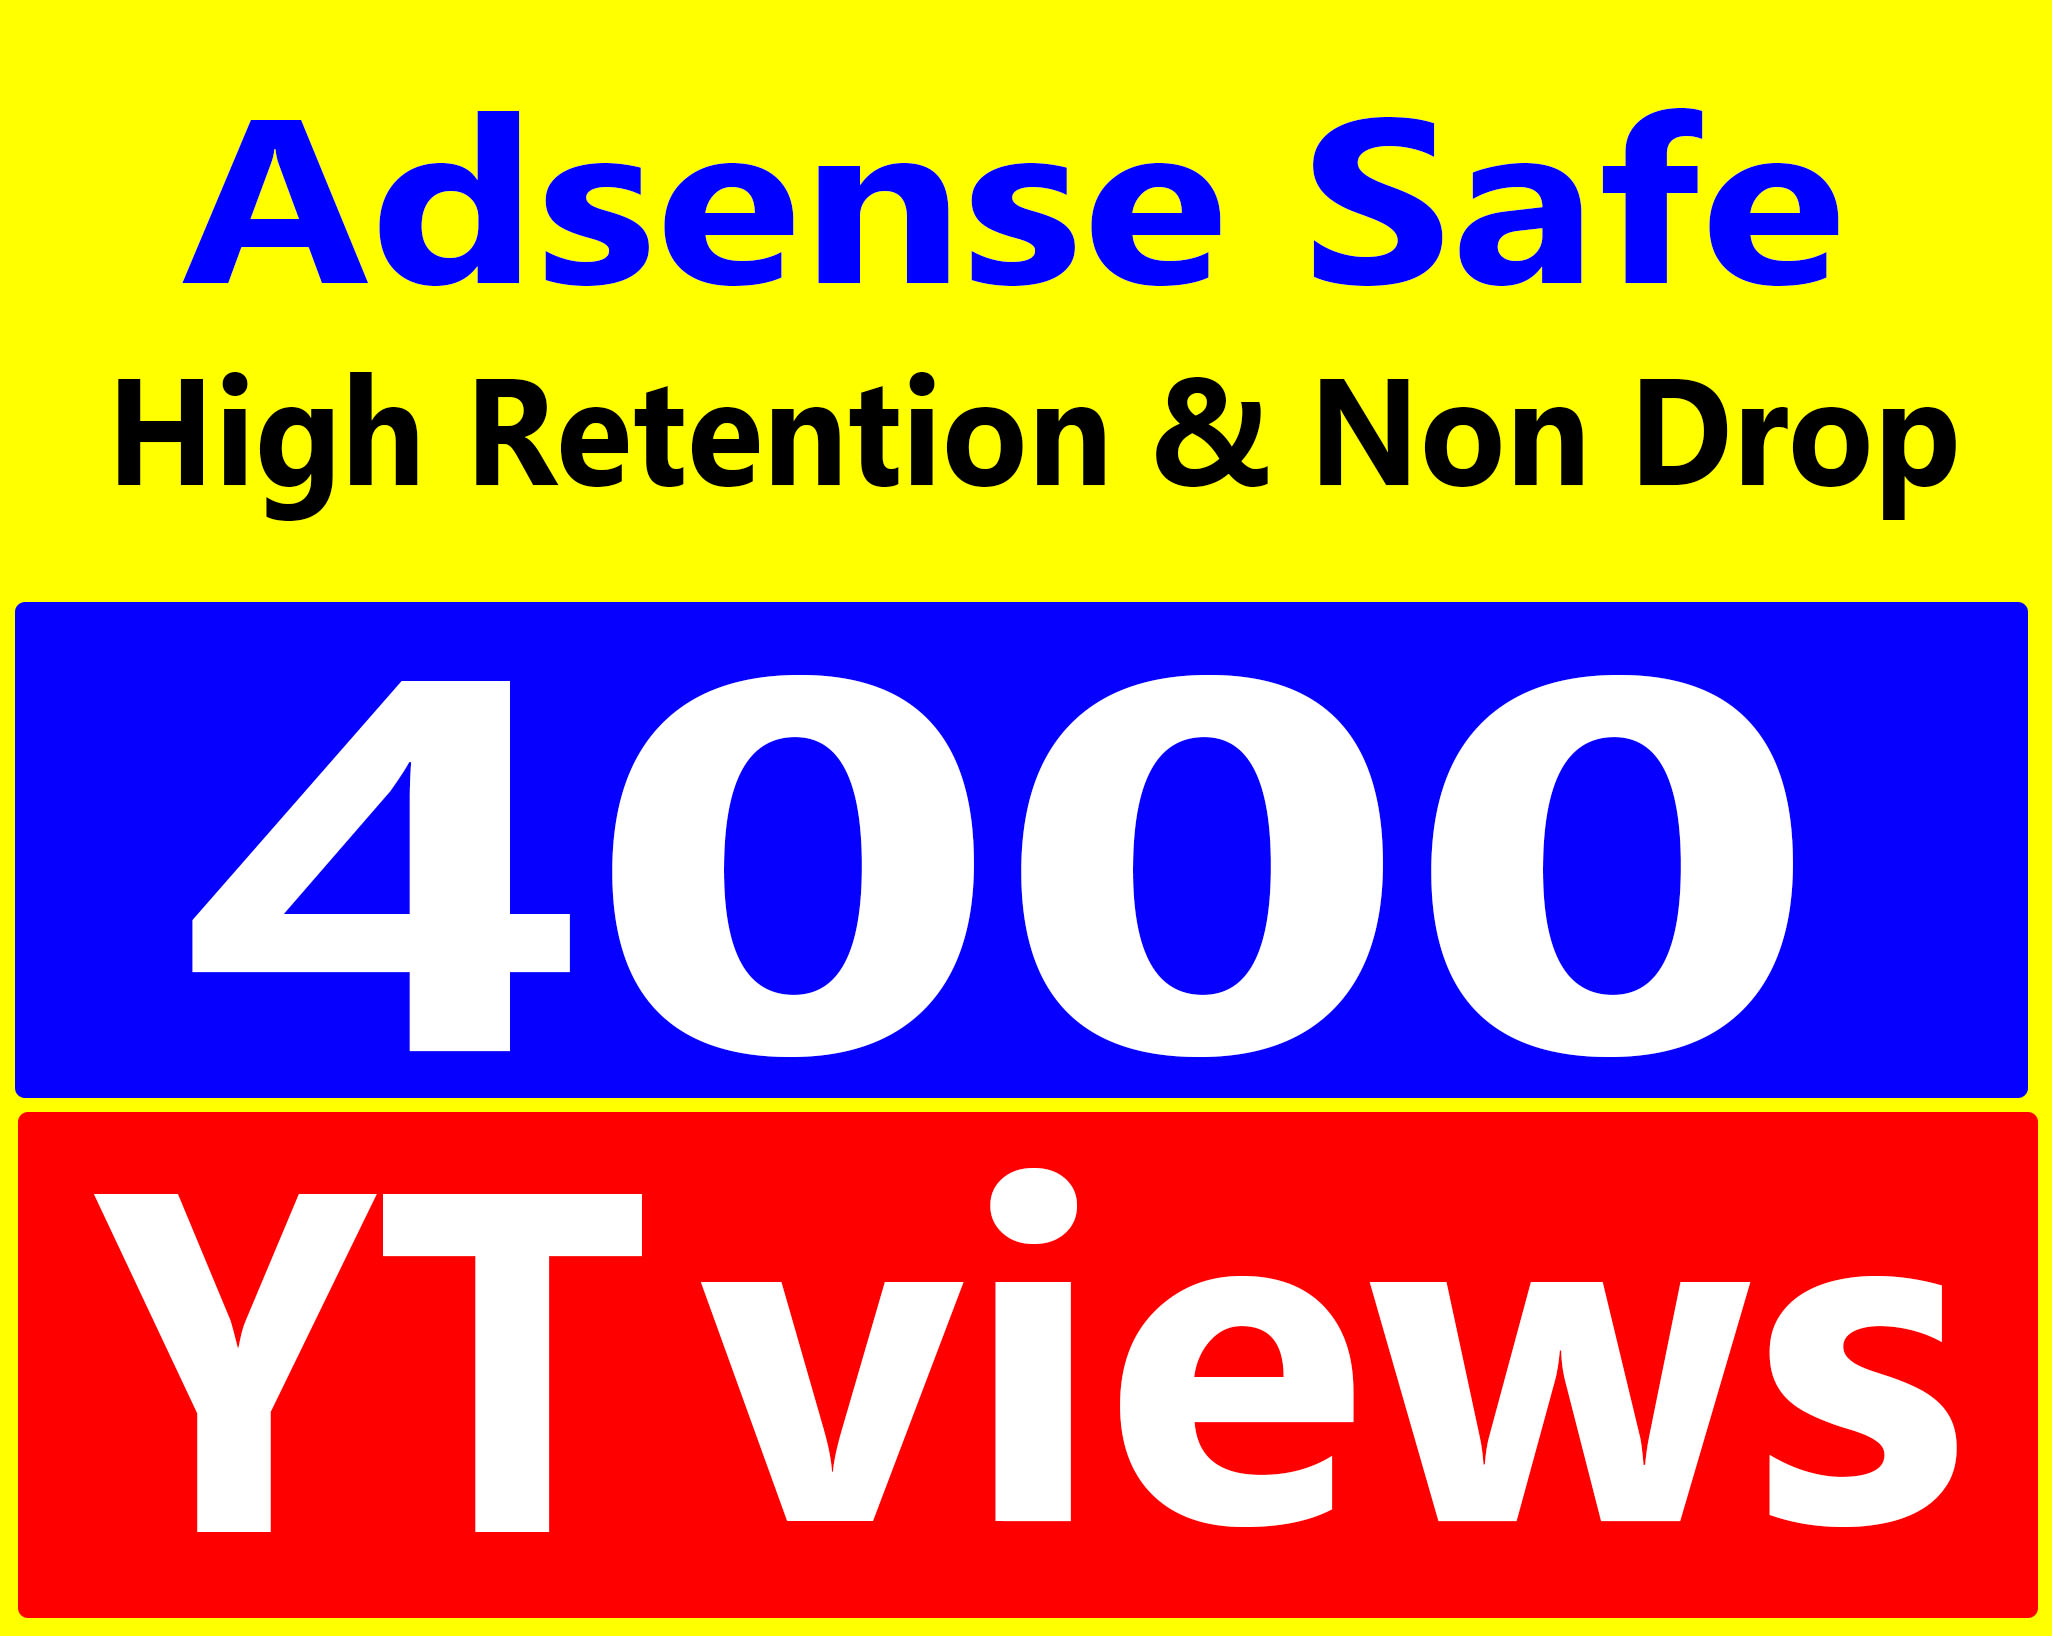 Fast 3000 To 4000 Views High Retention 90-100% Ad-sense Safe & Non Drop Service